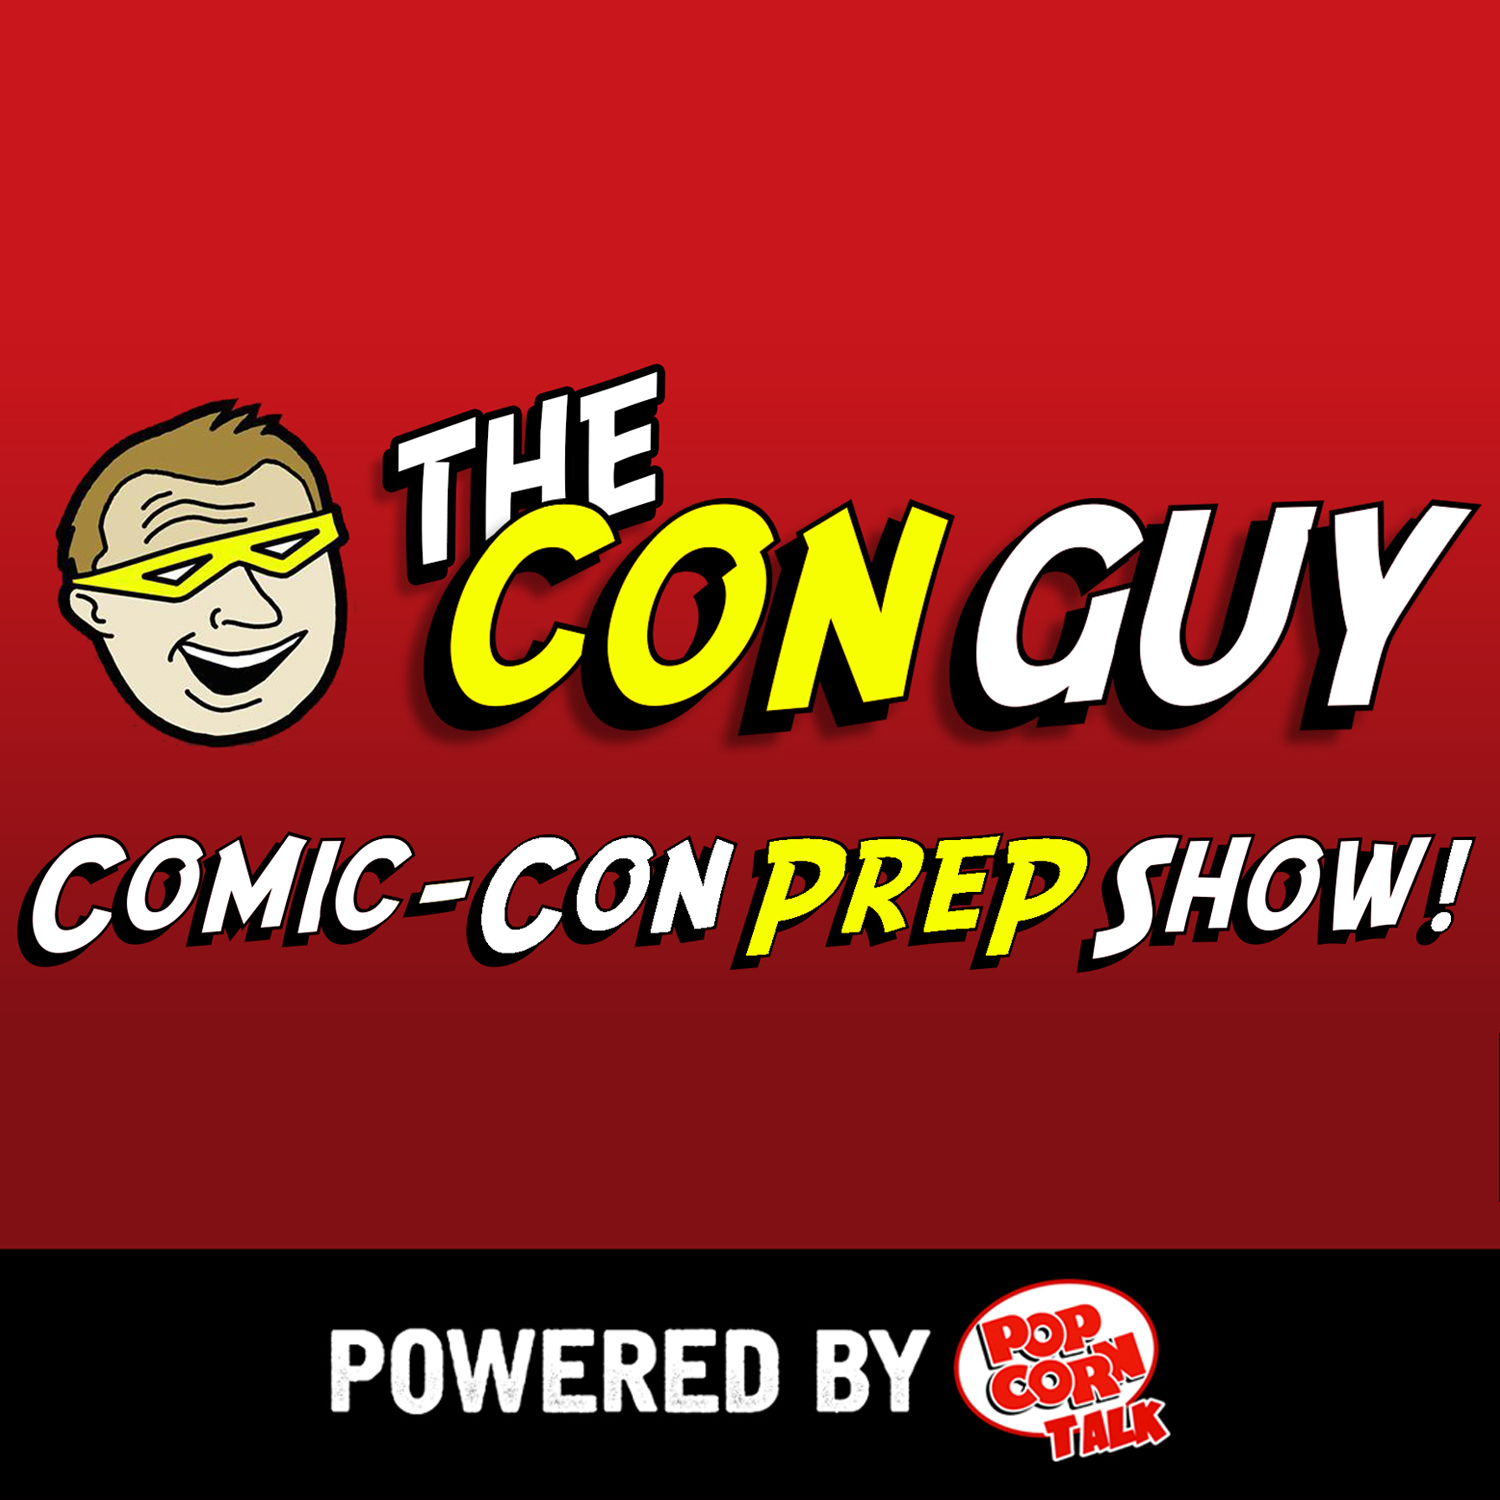 The Con Guy Comic-Con Prep Show